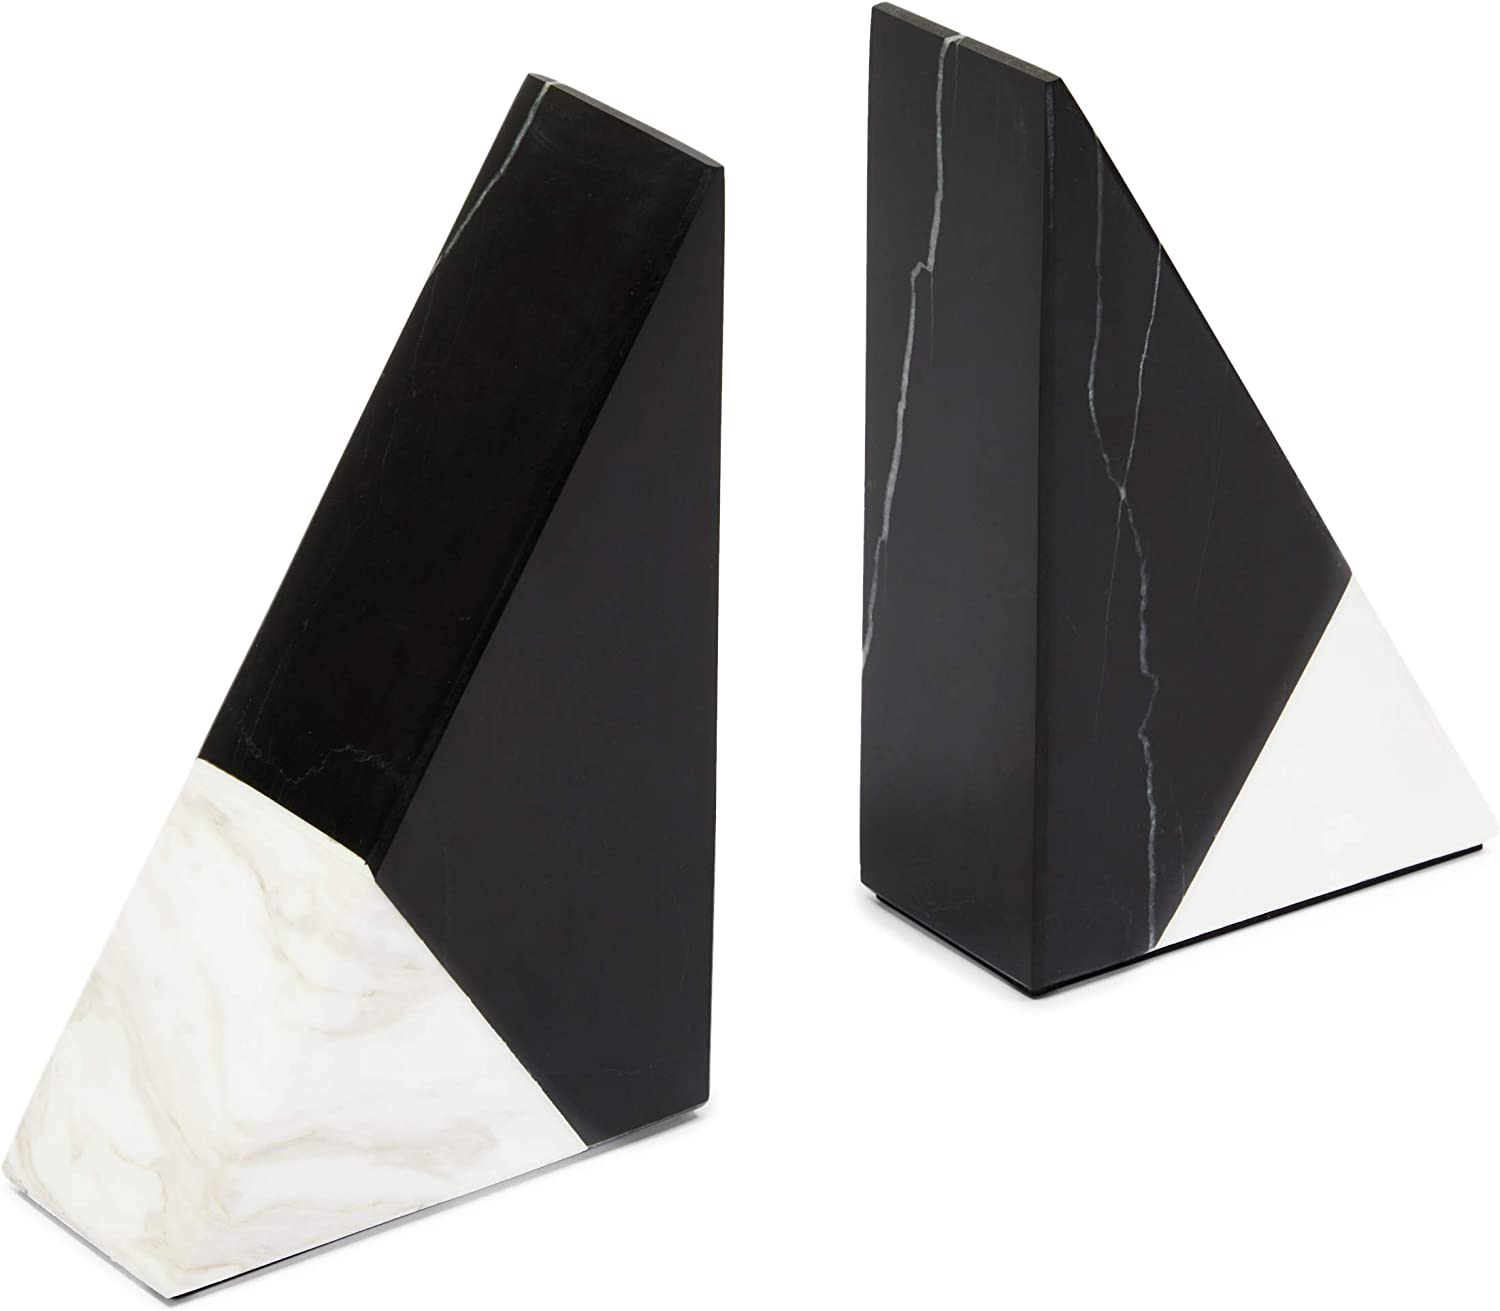 Black Marble Decorative Bookends for Shelves (3.9 x 6.3 x 2 in, 1 Pair)